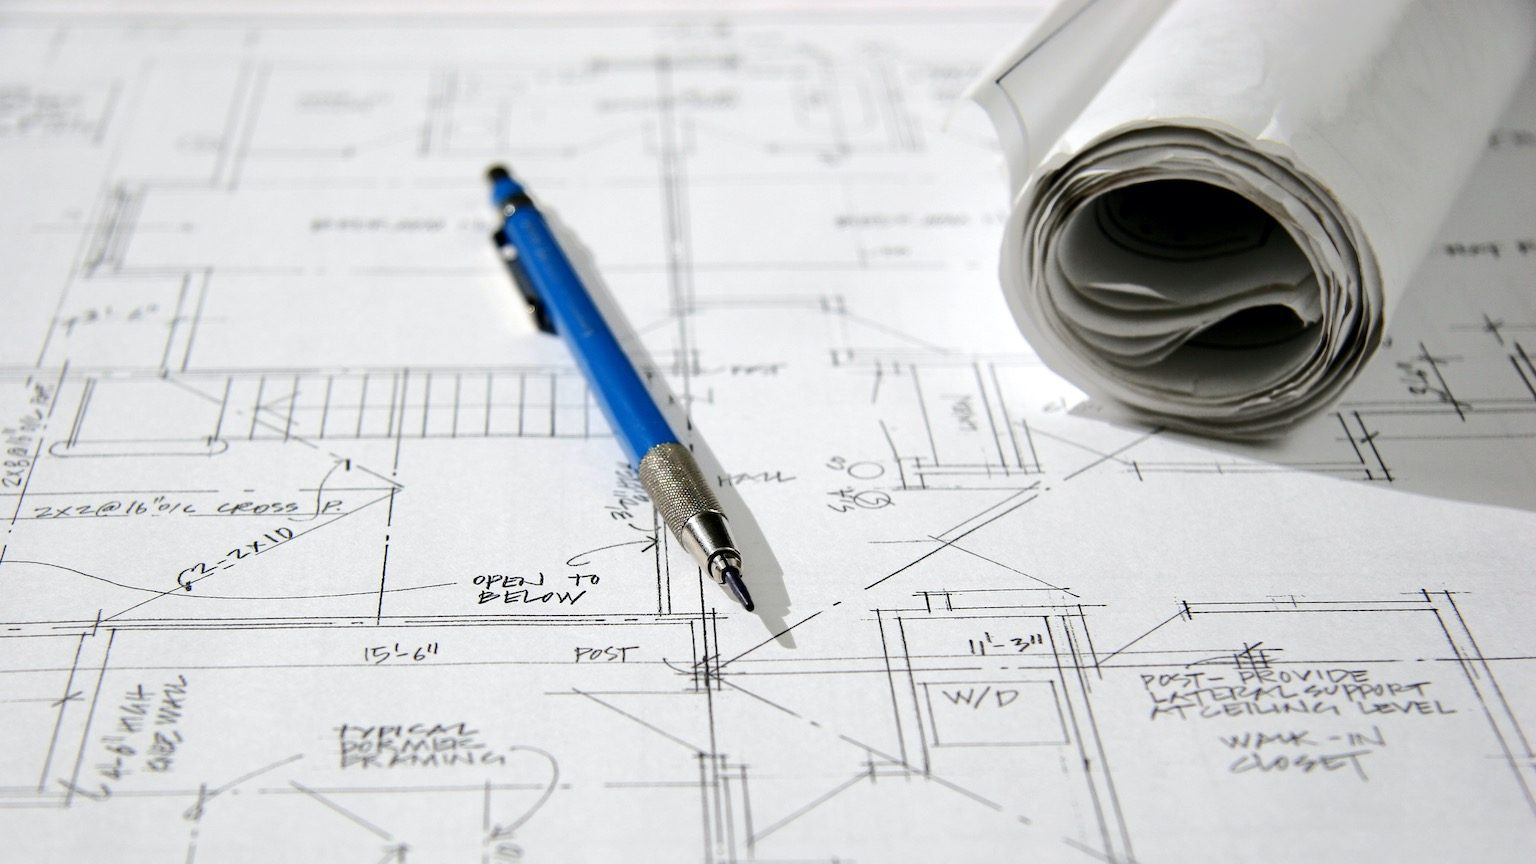 This is a photo of a mechanical pencil and a rolled up blueprint laying on top of an architectural drawing